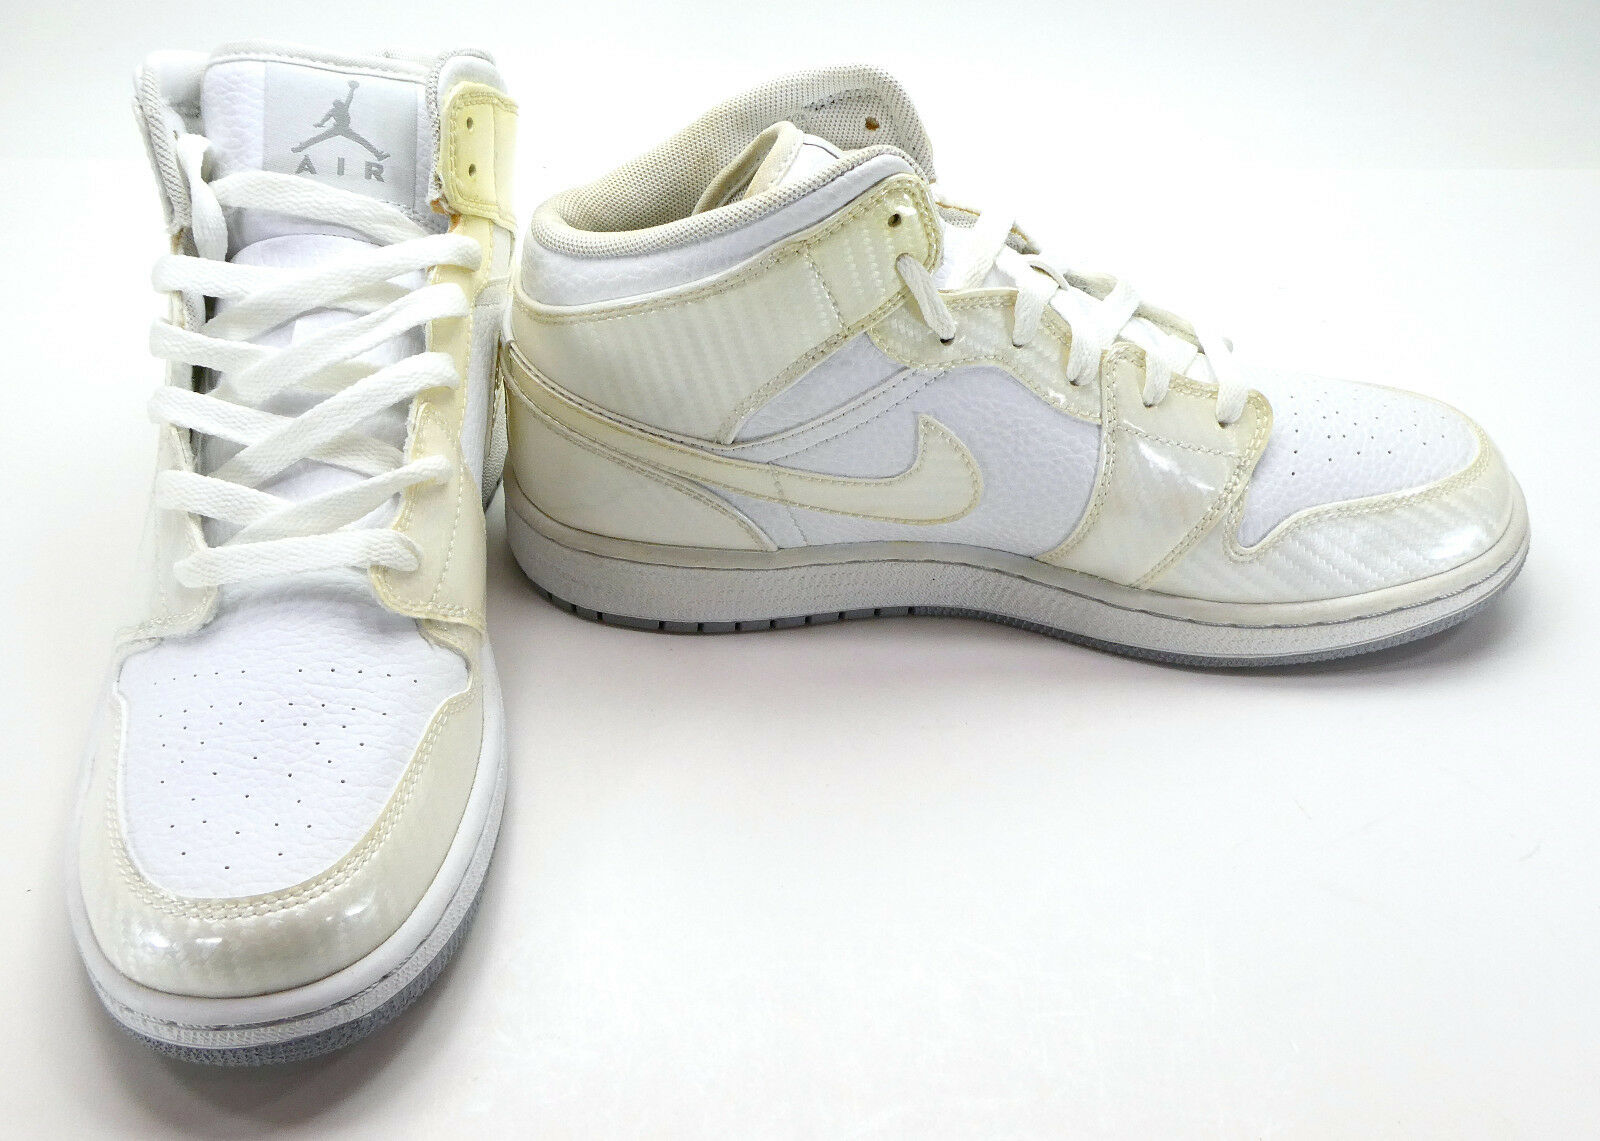 Nike Chaussures Youth Air Jordan 1 Retro Phat Youth Chaussures blanc /Cream Baskets 5d329a